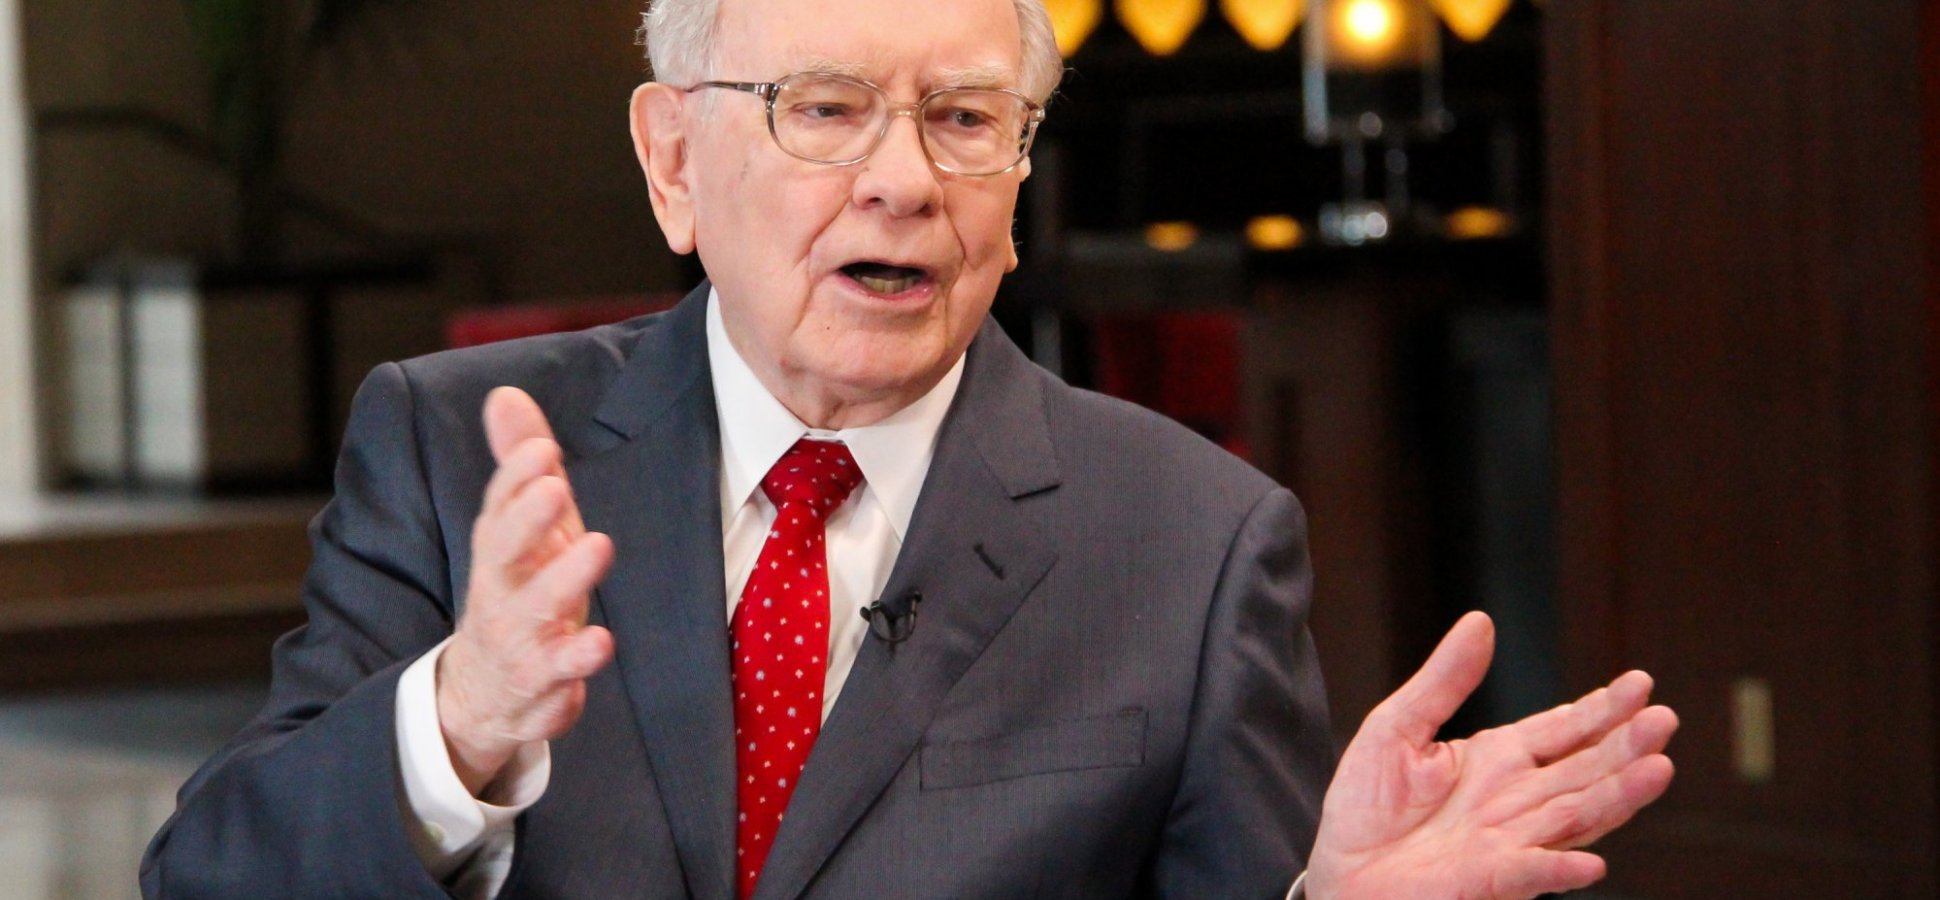 Warren Buffett Just Shared His 1 Best Piece of Advice. (He Says It's 'Very Simple,' and Will Boost Your Net Worth by 'at Least' 50 Percent)